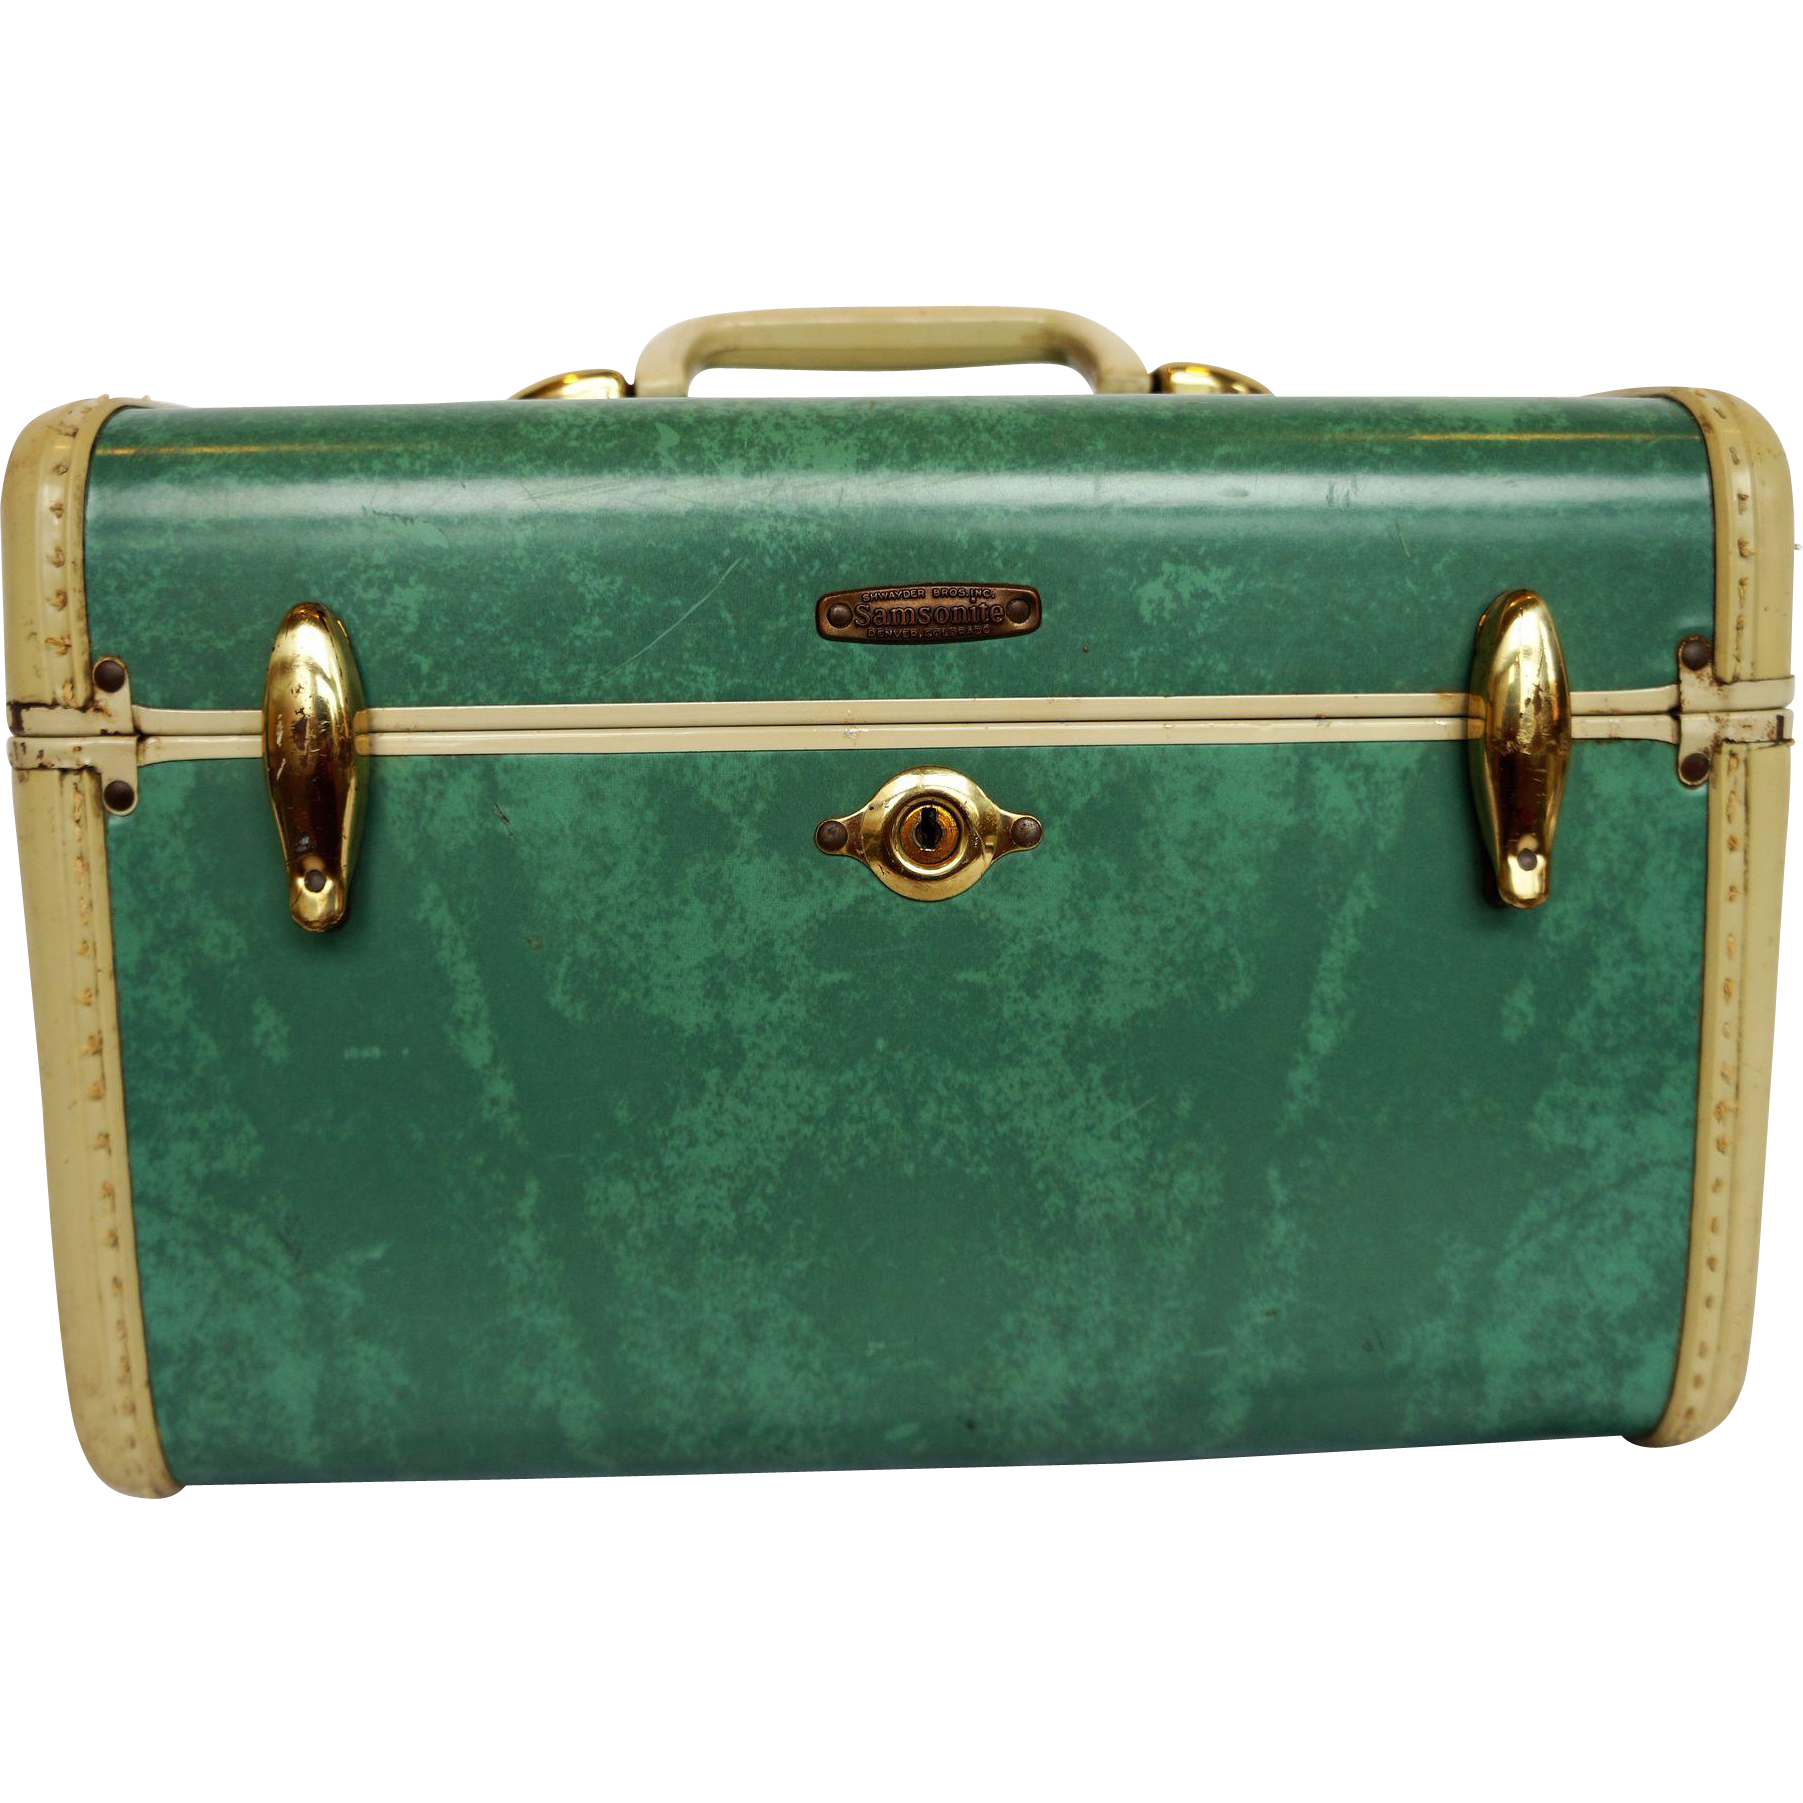 Turquoise Marbled Train Case Shwayder Bros Samsonite VIntage 1940s-50s